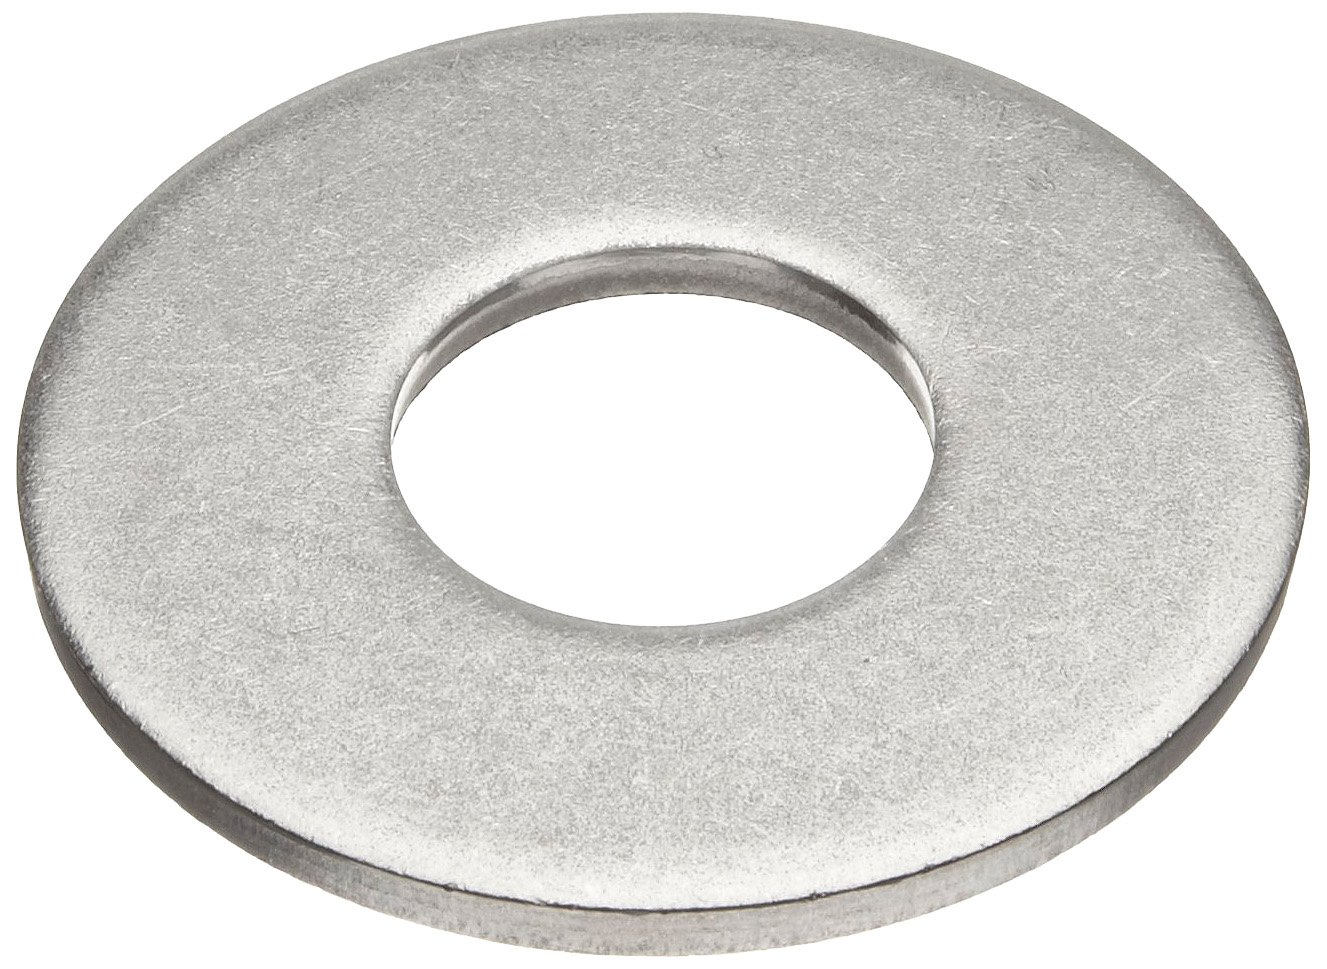 0.164 Nominal Thickness 3//4 Hole Size 0.938 ID 2.250 OD Made in US 18-8 Stainless Steel Flat Washer